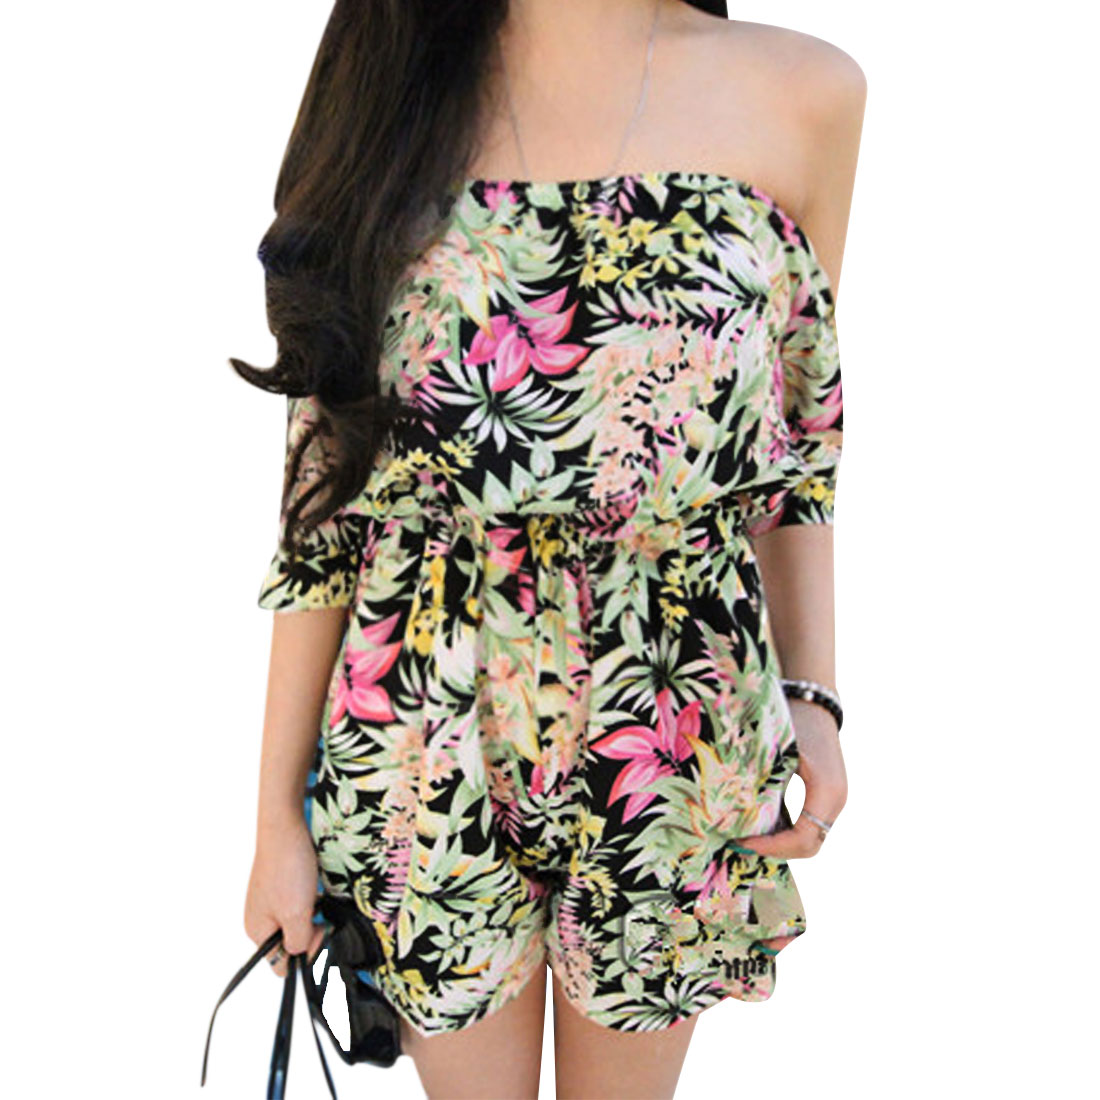 Lady Black Off-Shoulder Short Sleeve Elastic Waist New Style Romper S